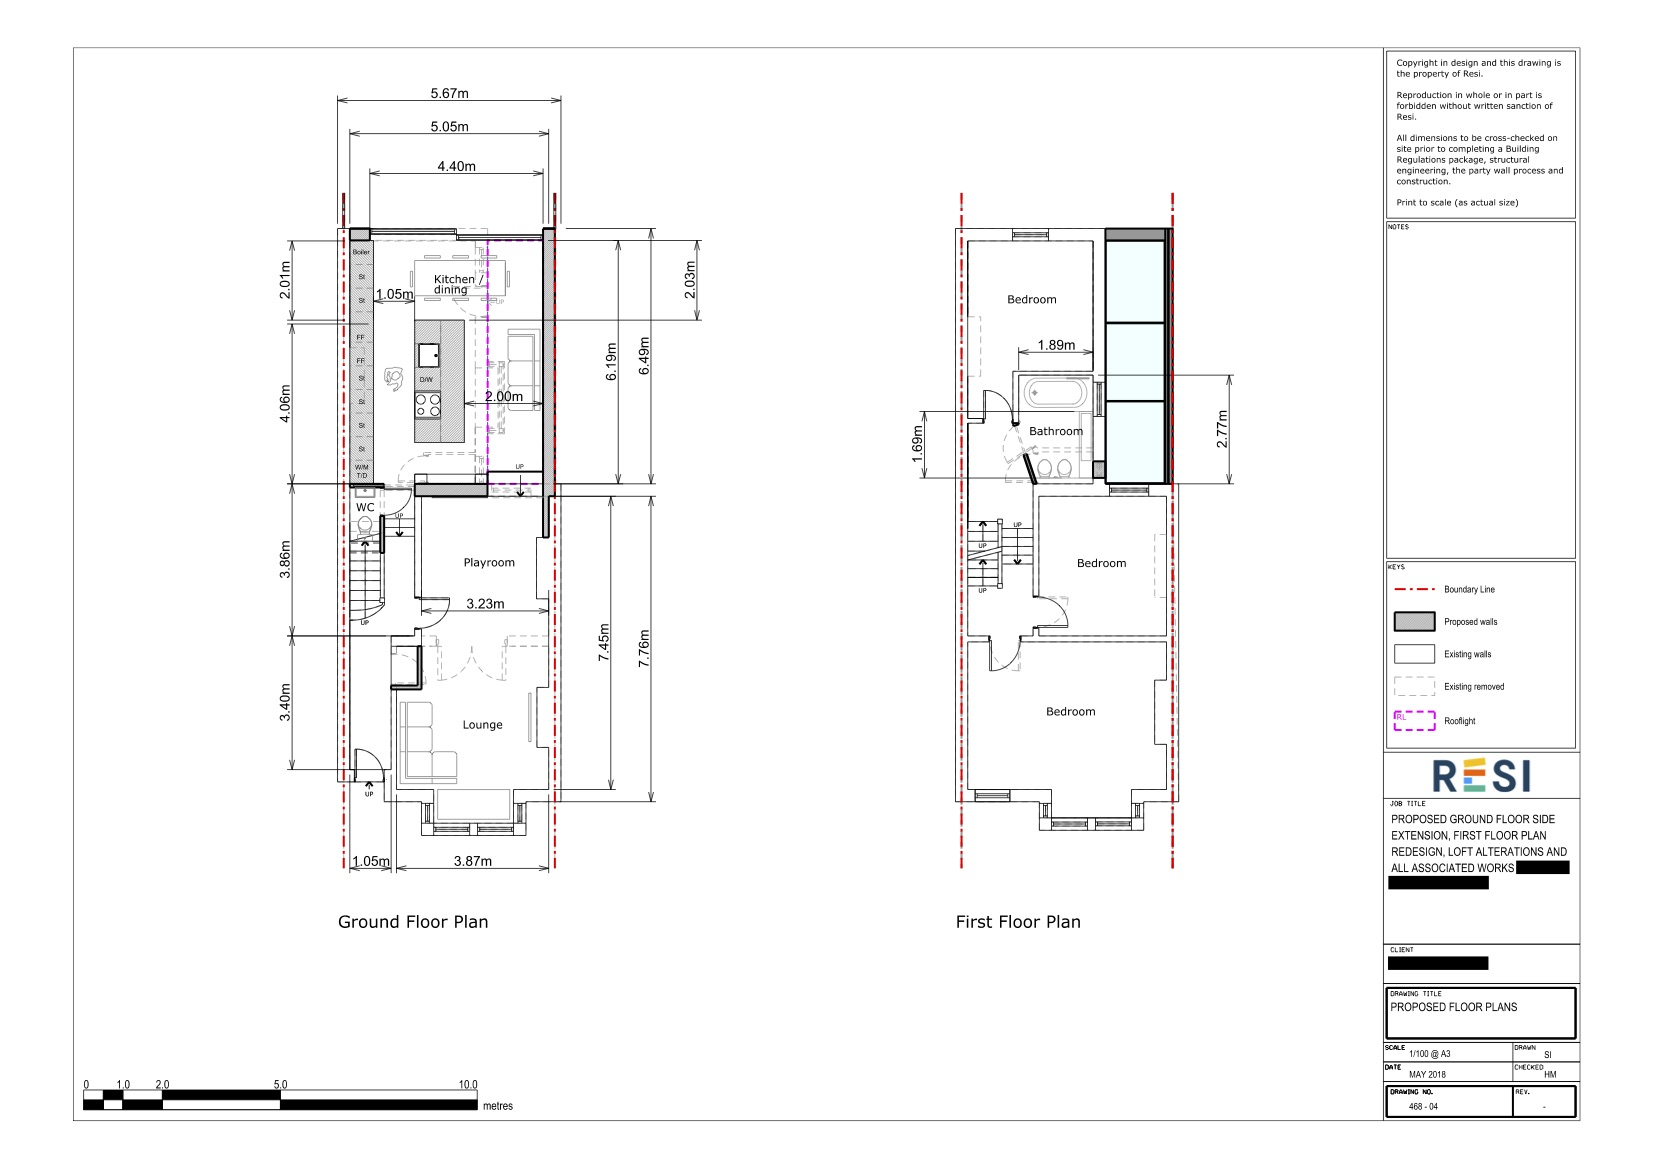 Architectural drawings rev a  ground and first floor plans